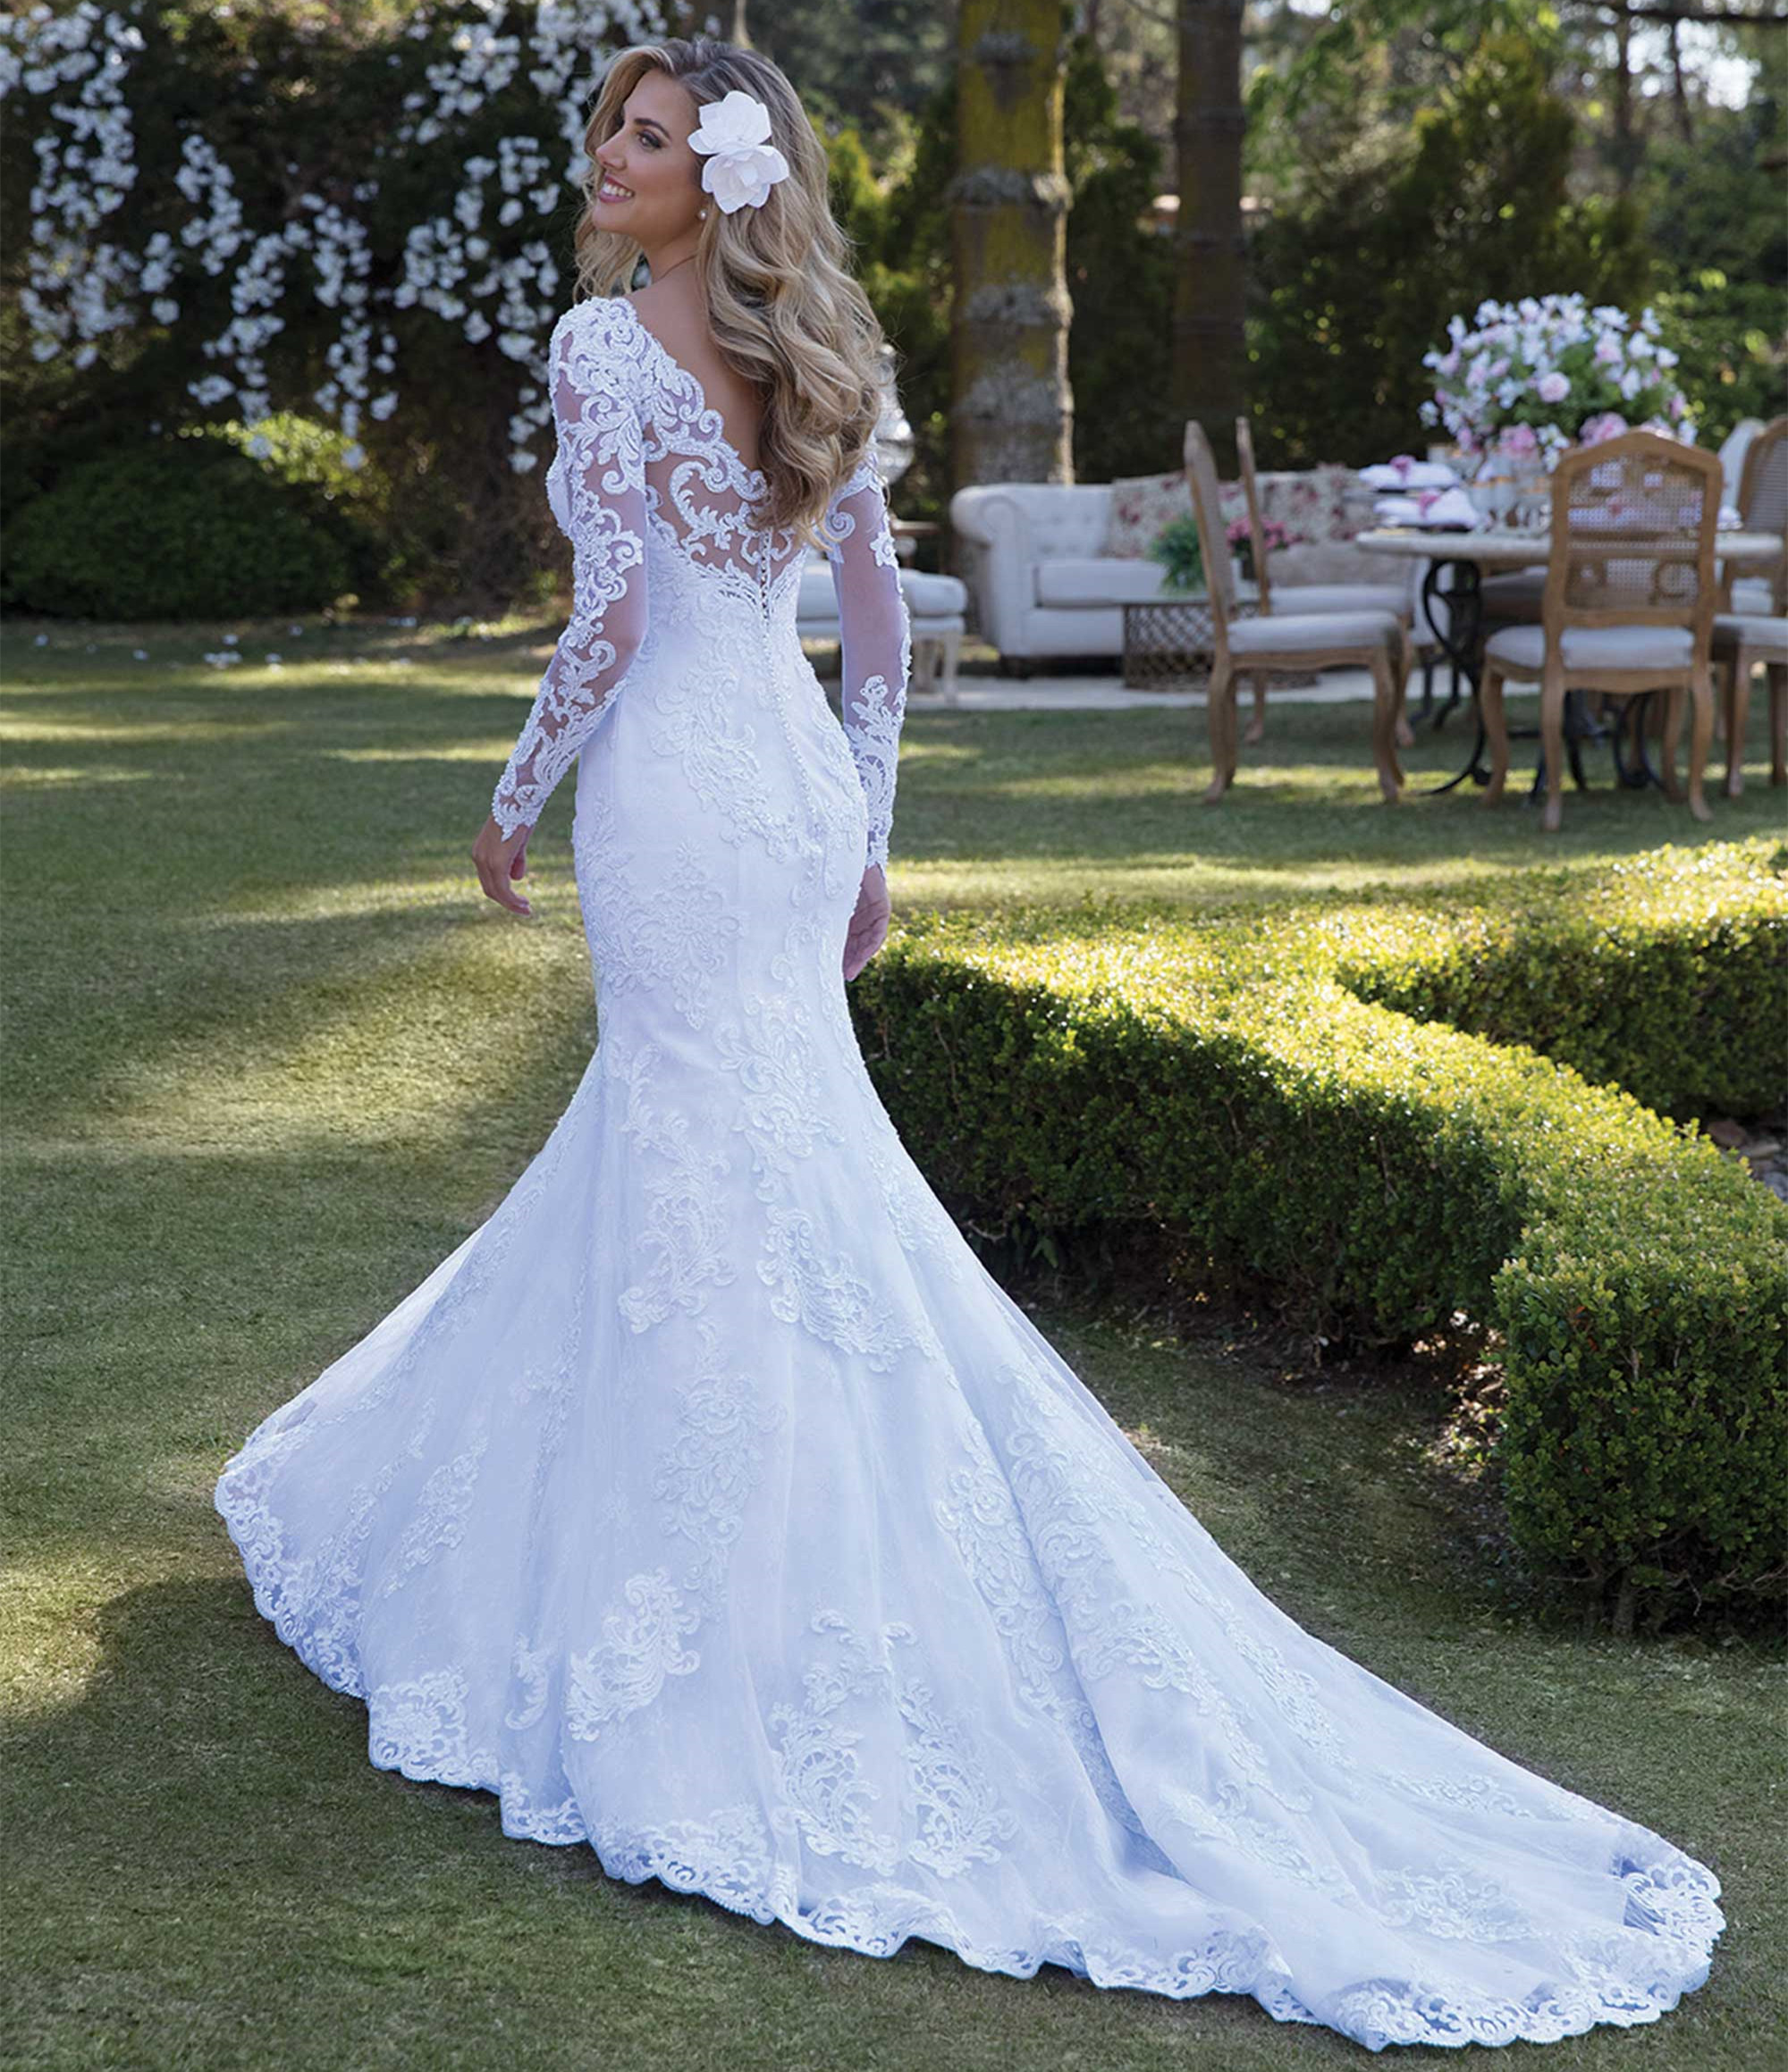 Sexy Wedding Dresses Mermaid Long Sleeve Tulle Lace Beaded Pearls Formal 2020 New Design Wedding Gowns Vestido De Noiva KW11